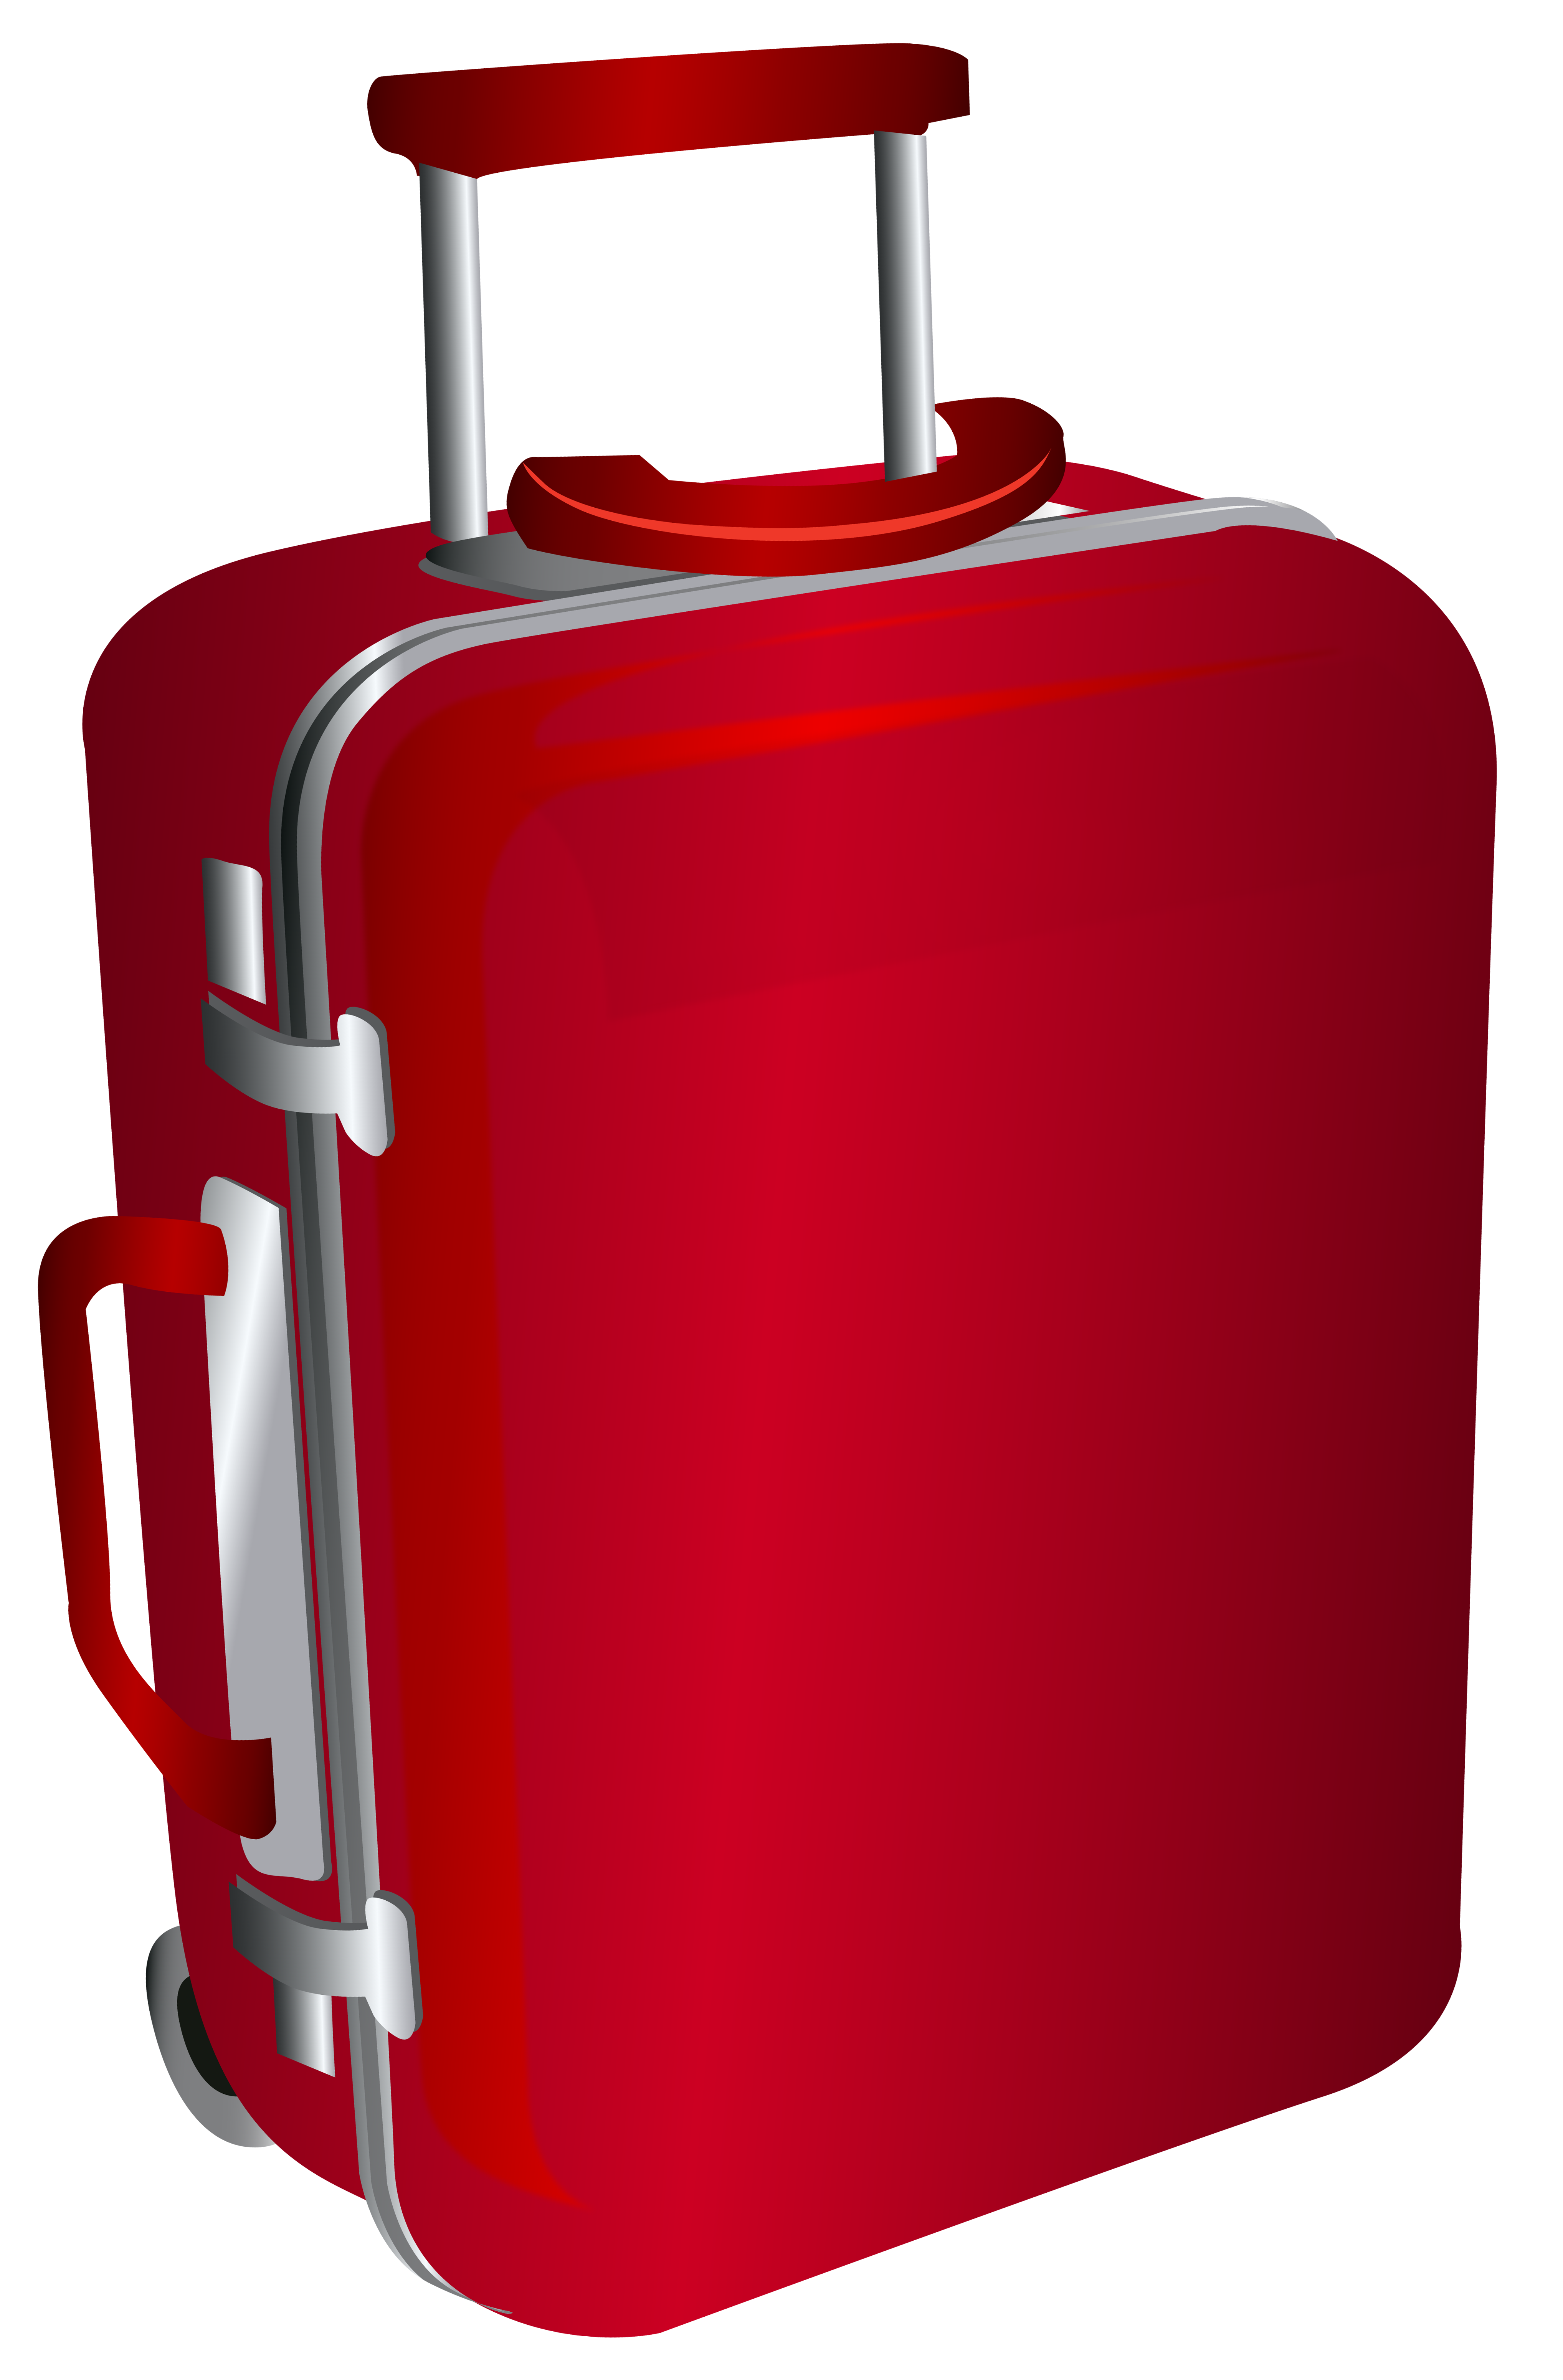 Rollercase clipart vector library download Red Trolley Travel Bag PNG Clipart Image | Gallery ... vector library download